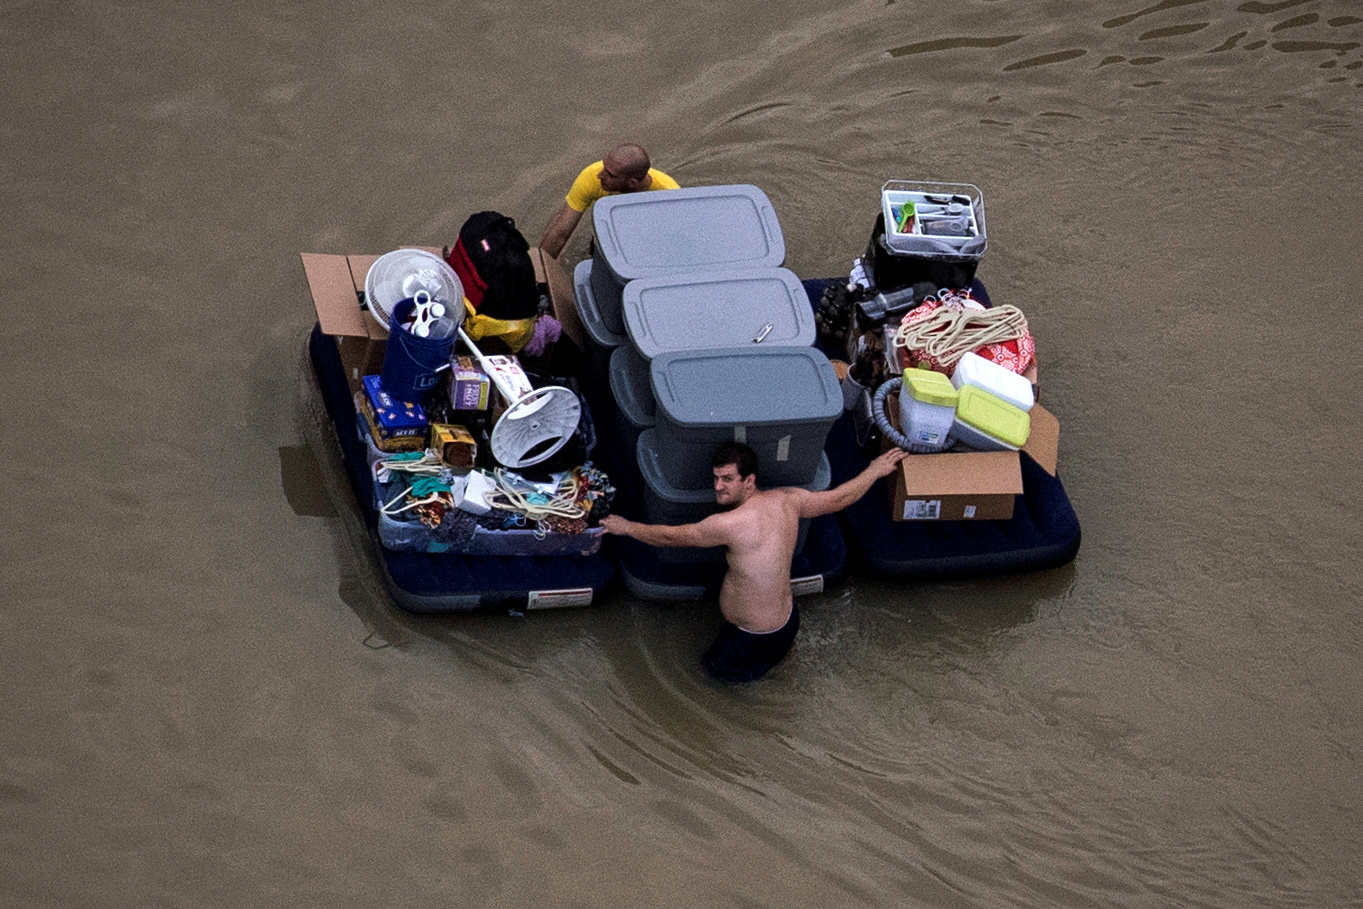 Residents wade with their belongings through flood waters brought by Tropical Storm Harvey in Northwest Houston, Texas, U.S. August 30, 2017. Photo by  Adrees Latif/REUTERS